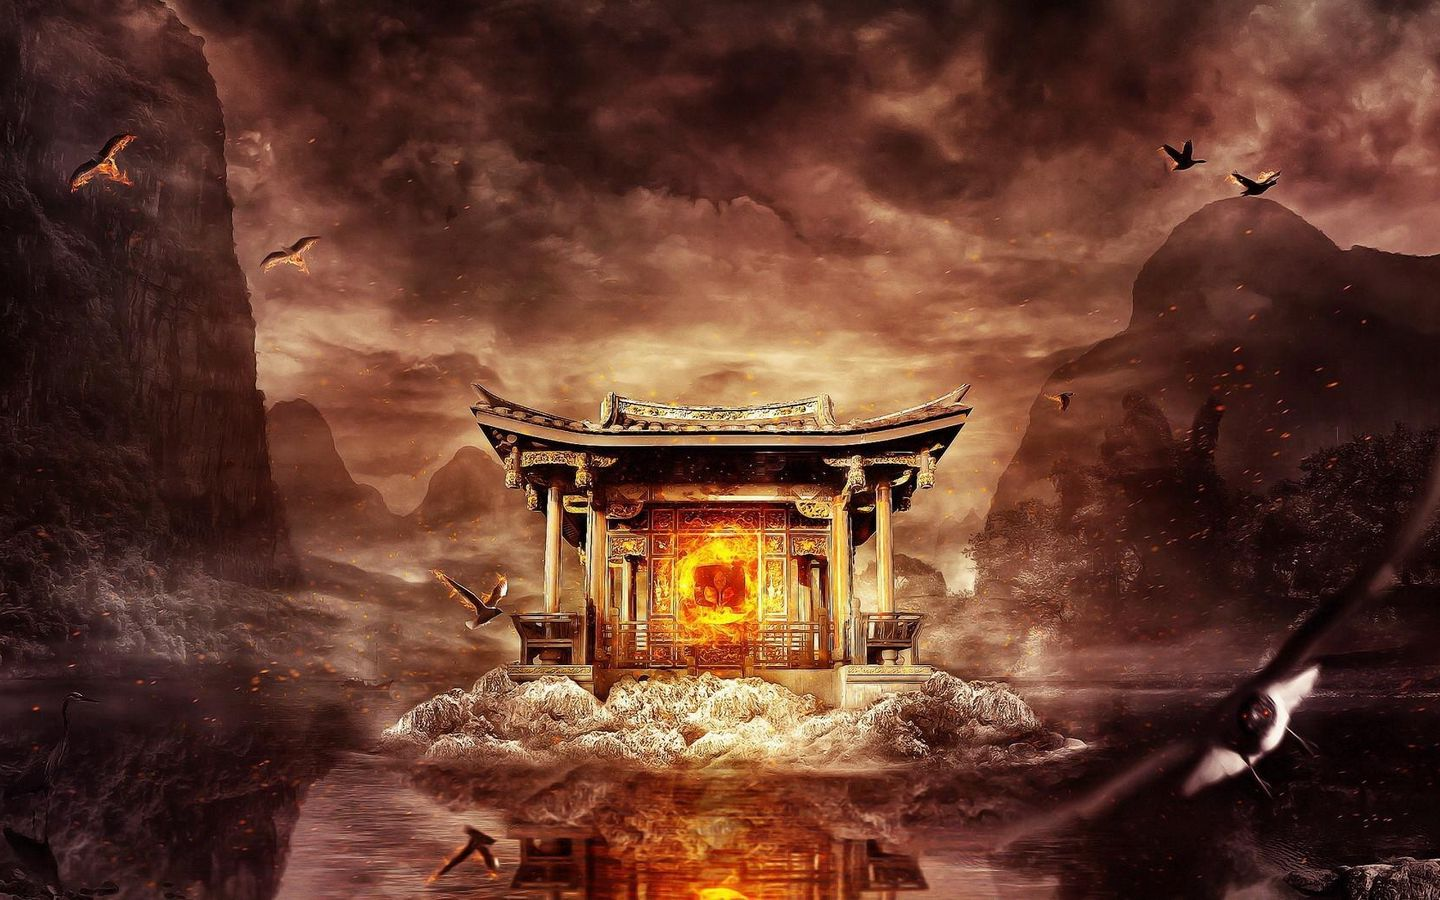 1440x900 Wallpaper temple, fire, mountains, birds, flying, water